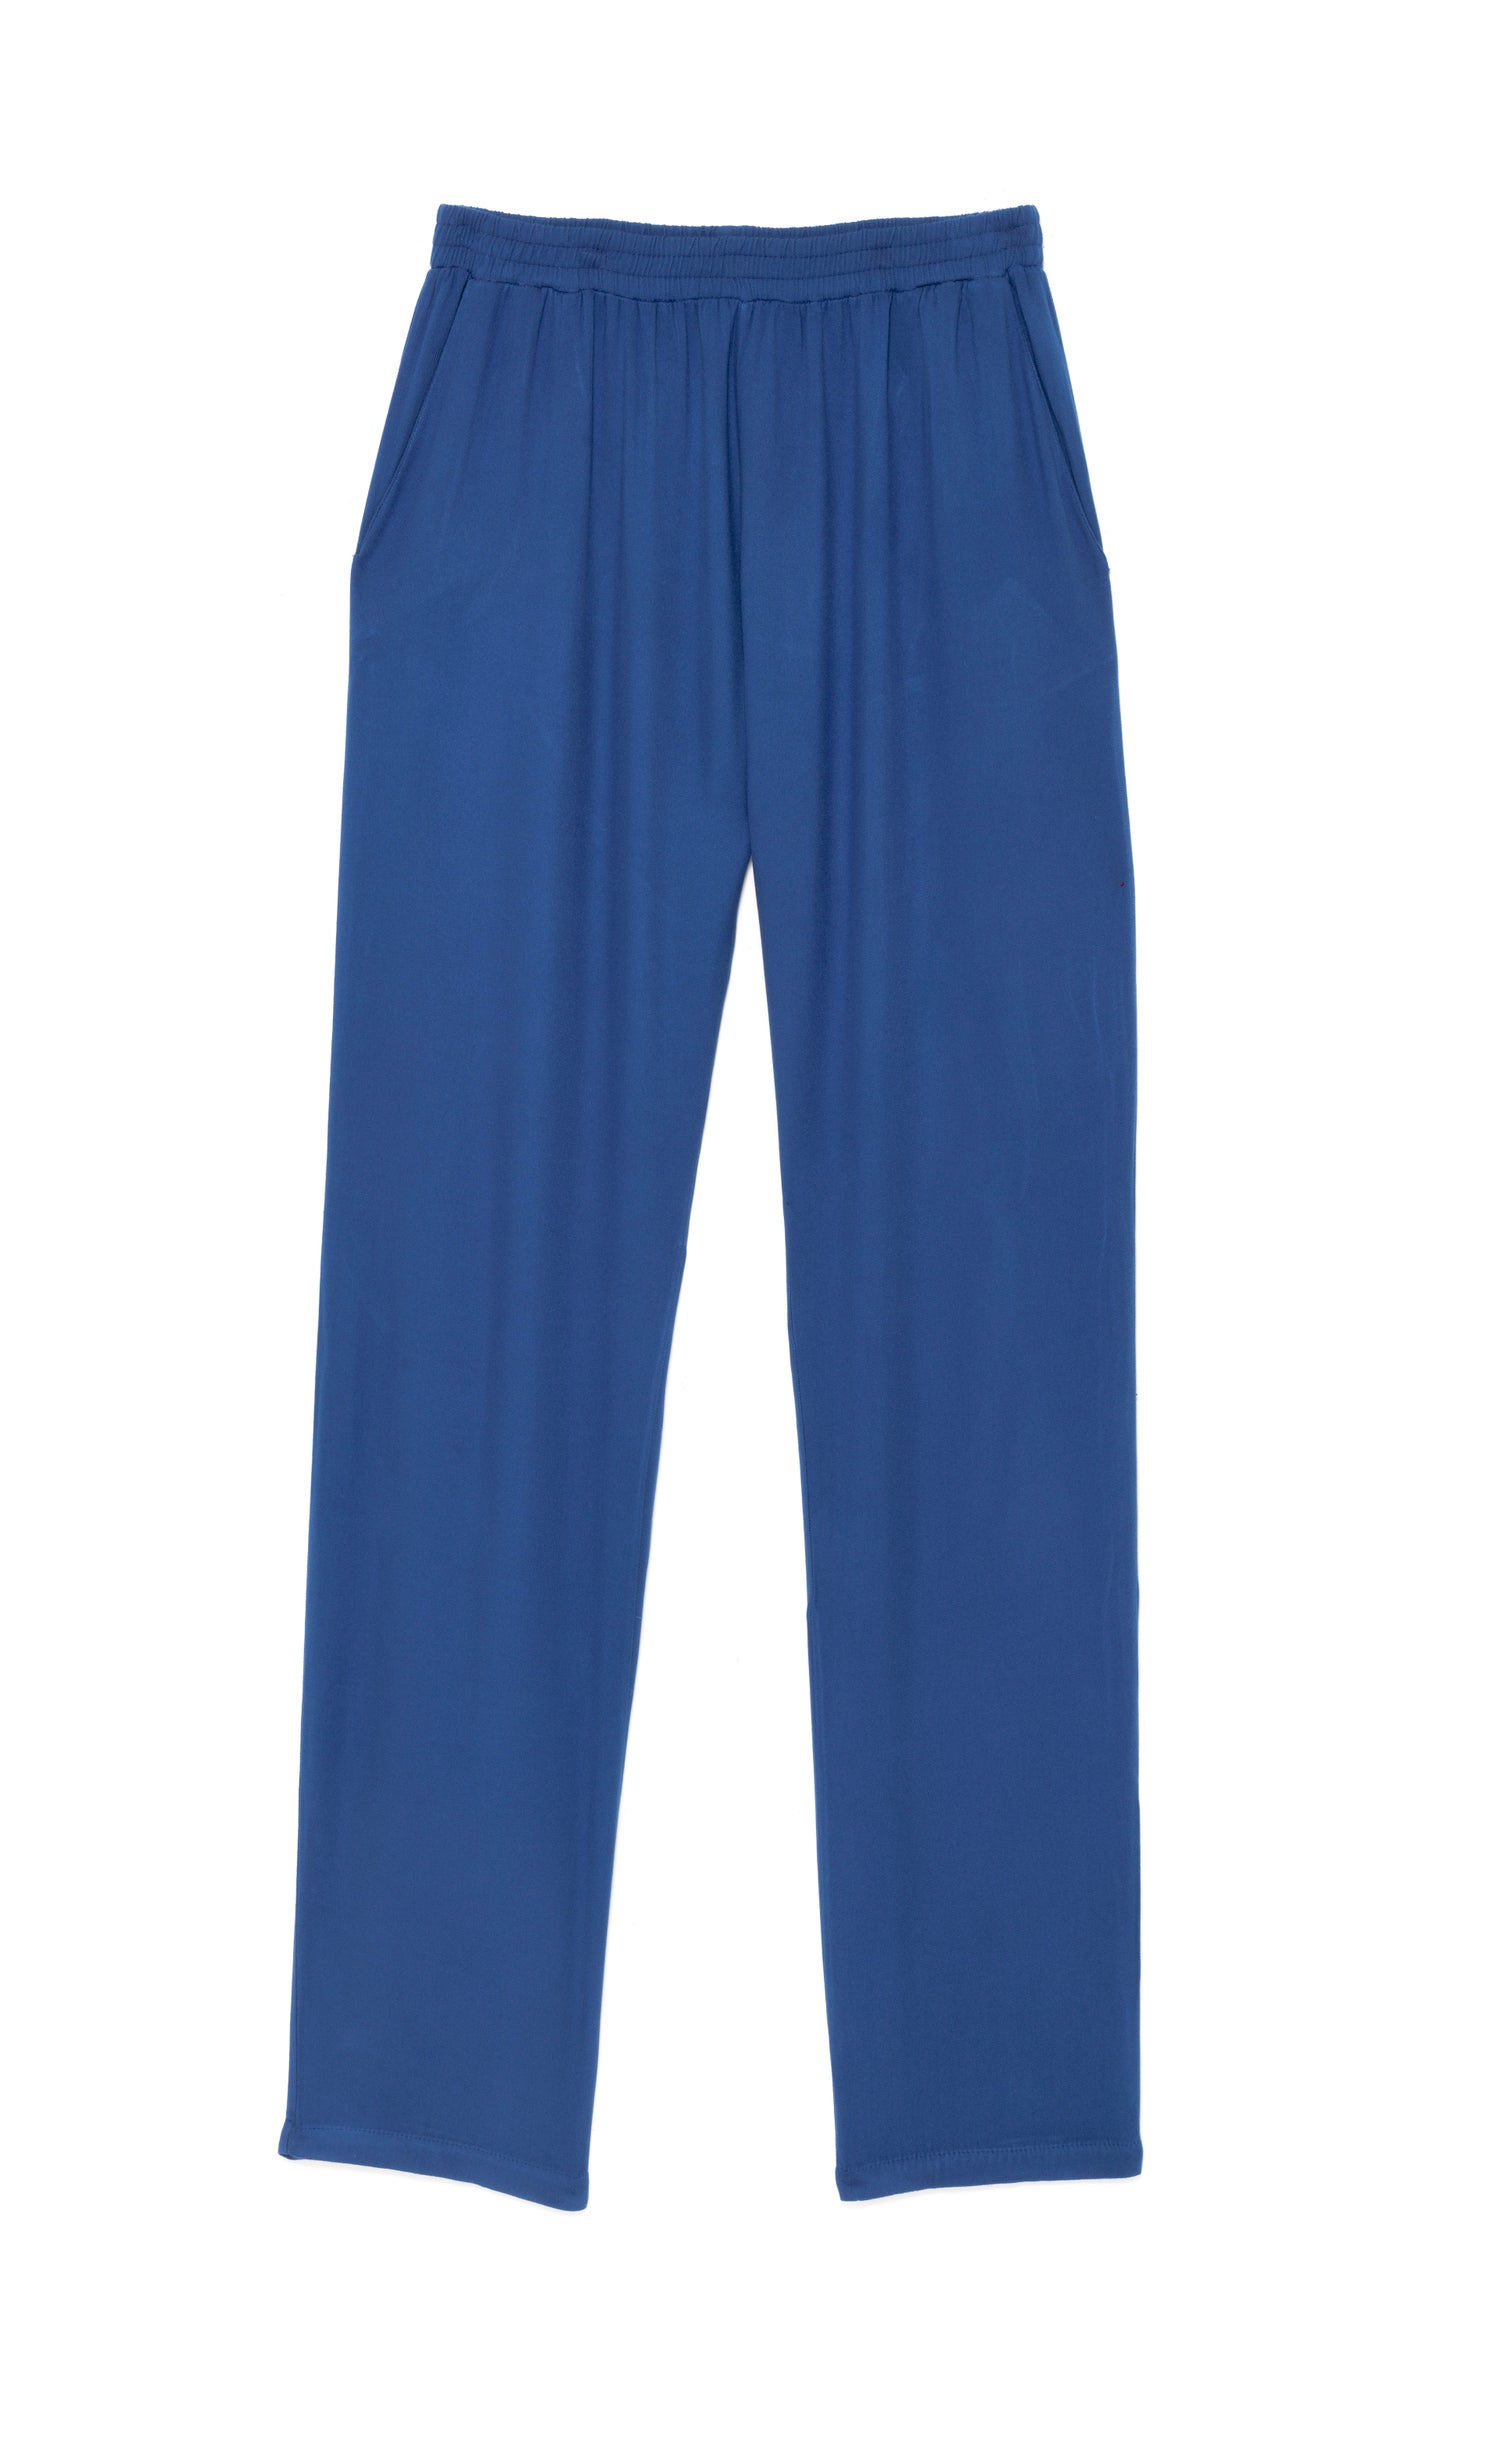 Image of Pantalon twill PENELOPE coloris primaires